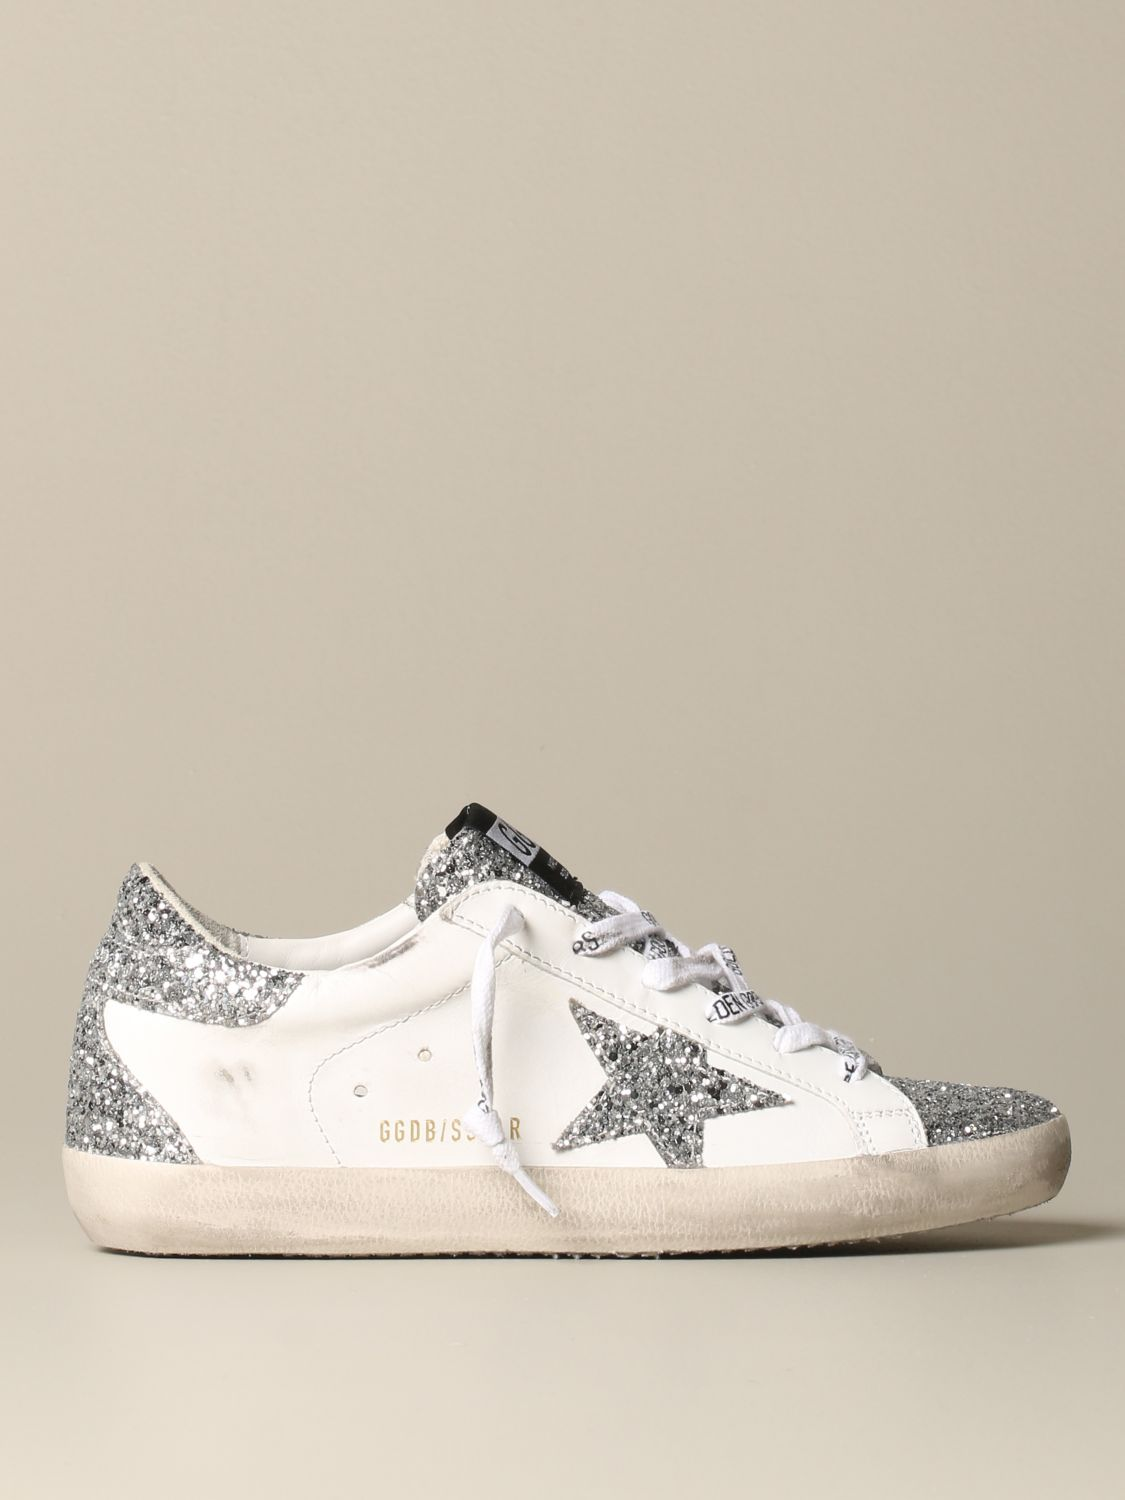 Golden Goose Superstar classic sneakers in leather and glitter